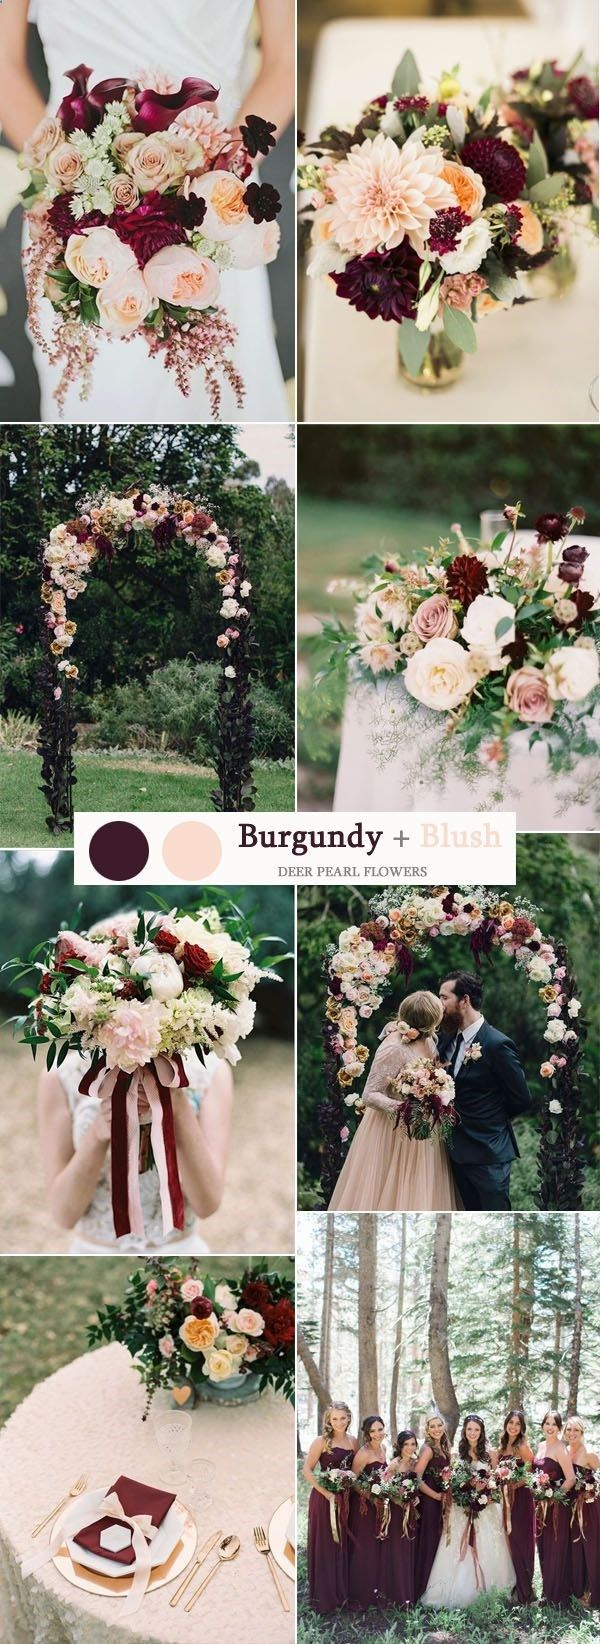 Wedding venue decorations ideas november 2018 burgundy and blush fall autumn wedding colors ideas